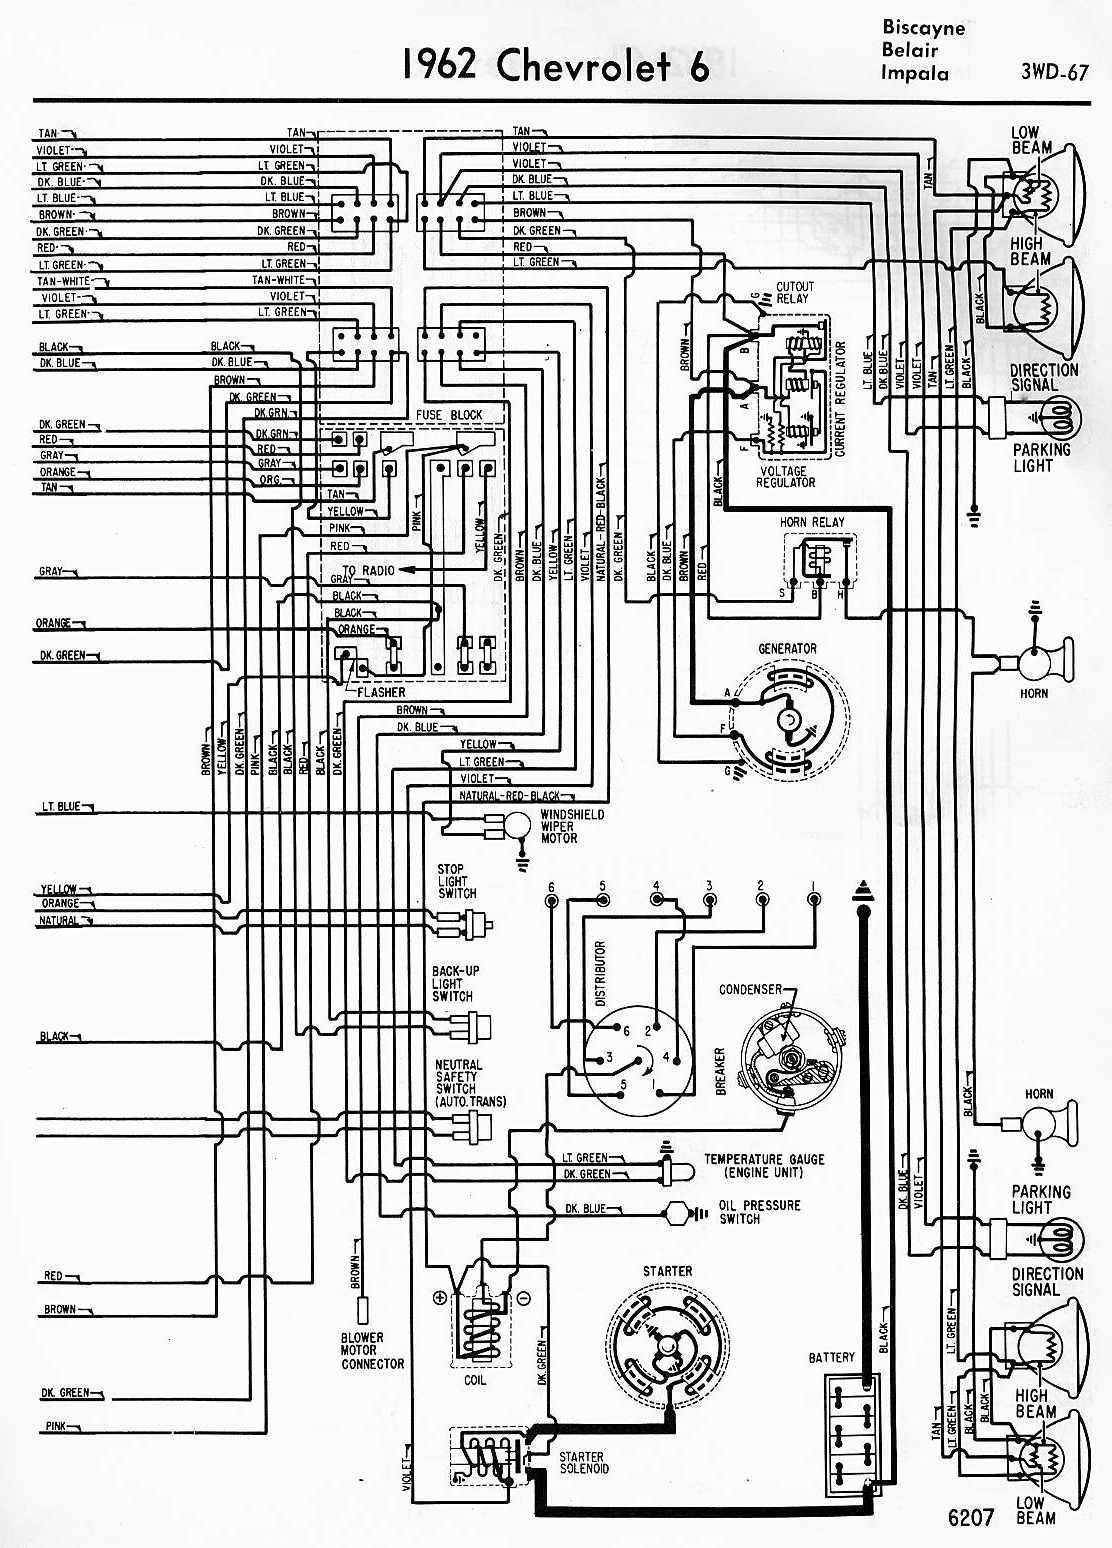 hight resolution of hot rod wiring diagrams chevy impala diagram trusted wiring diagram 07 impala wiring diagram 66 chevy